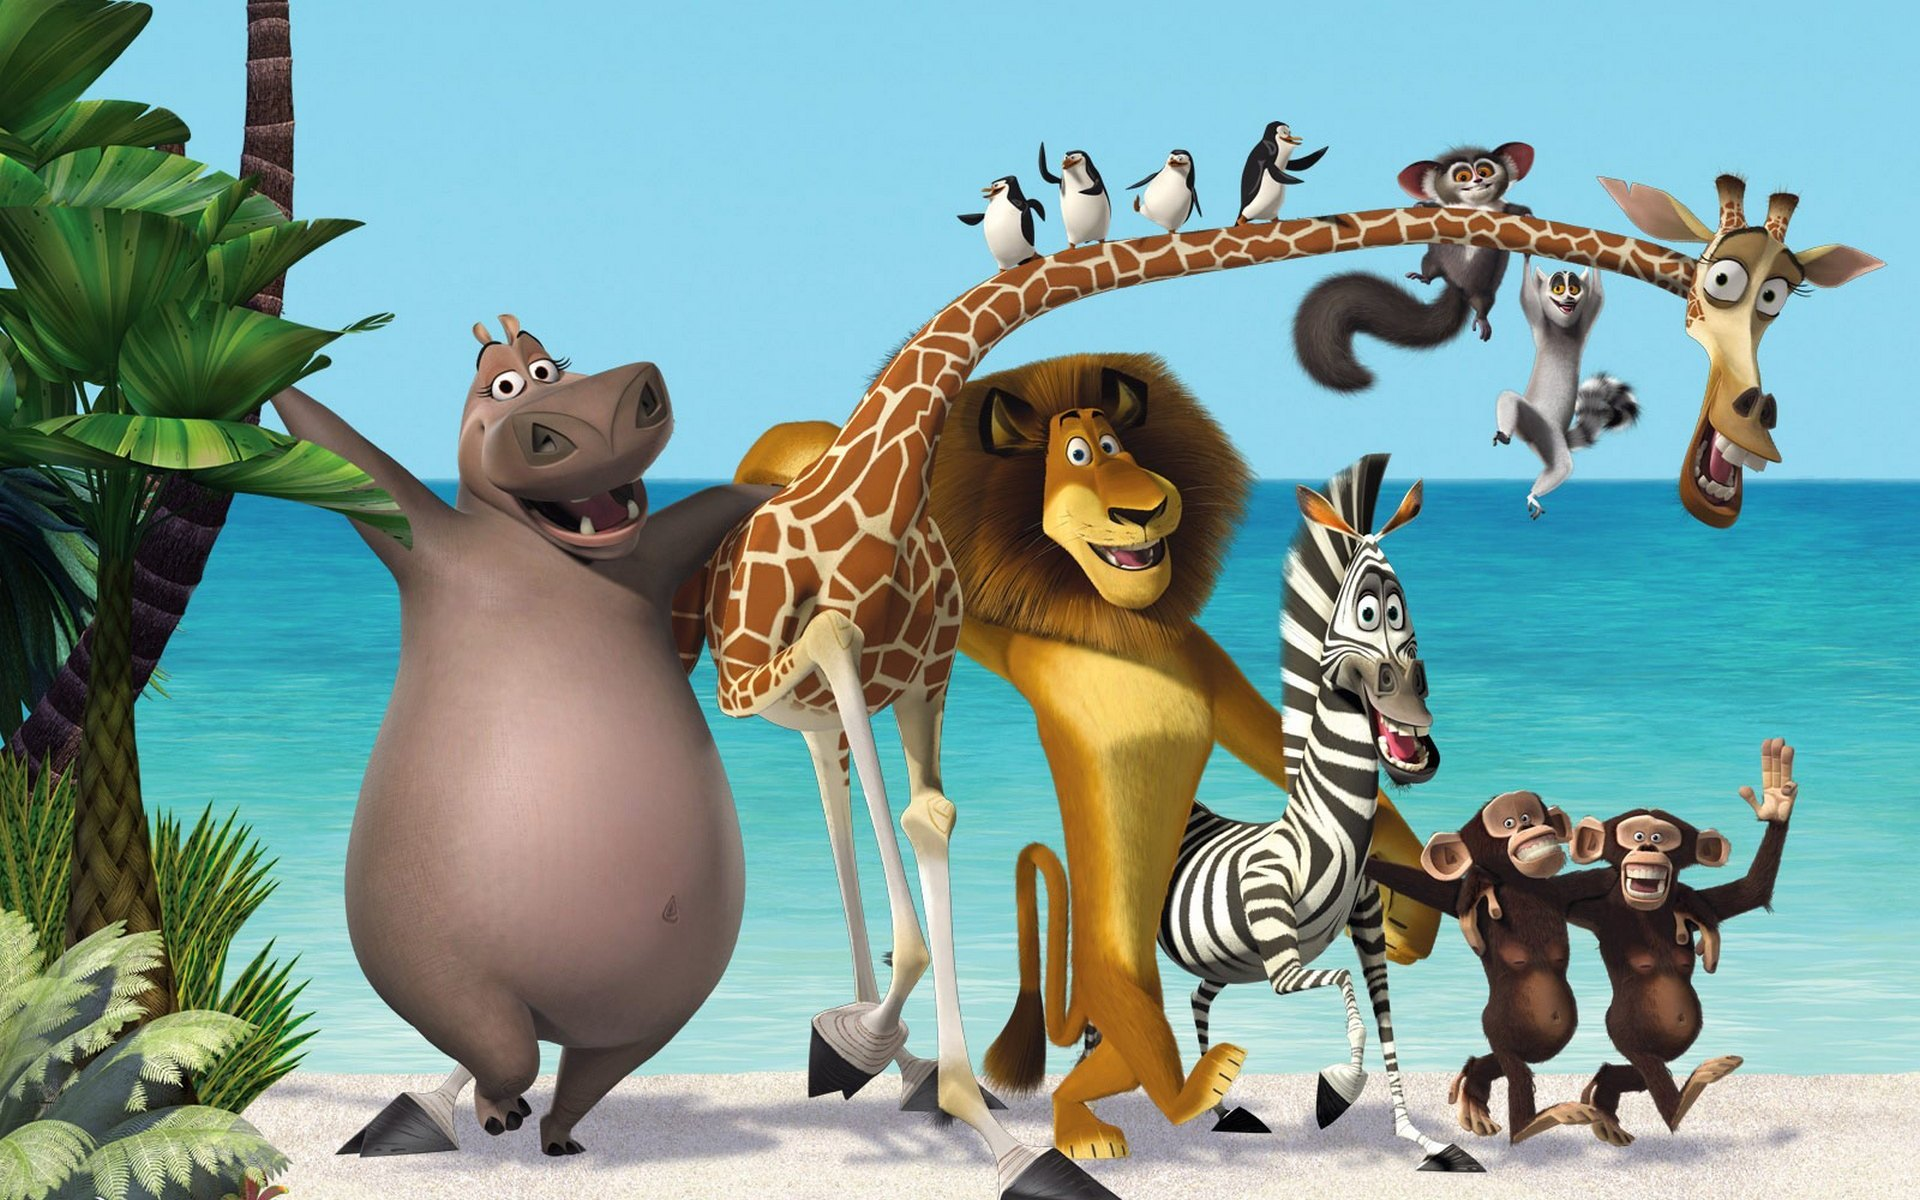 madagascar 3 europe's most wanted hd wallpapers - all hd wallpapers